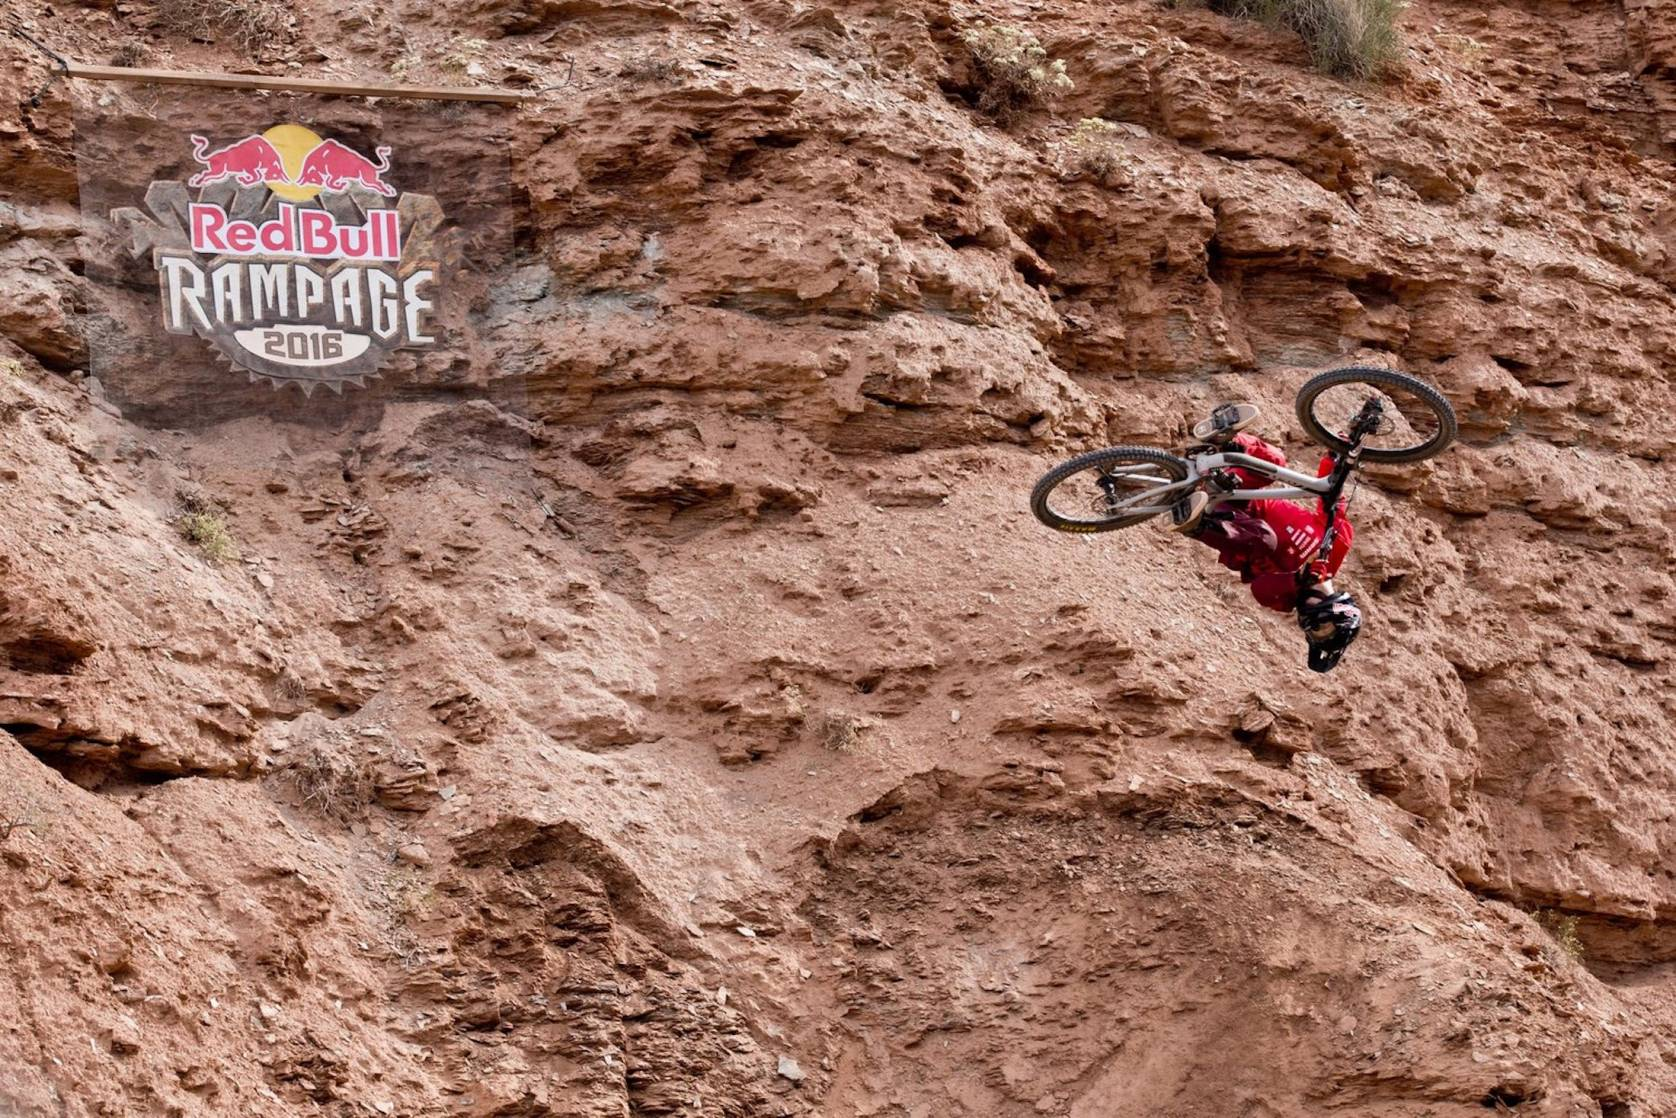 Brandon Semenuk flips at Red Bull Rampage